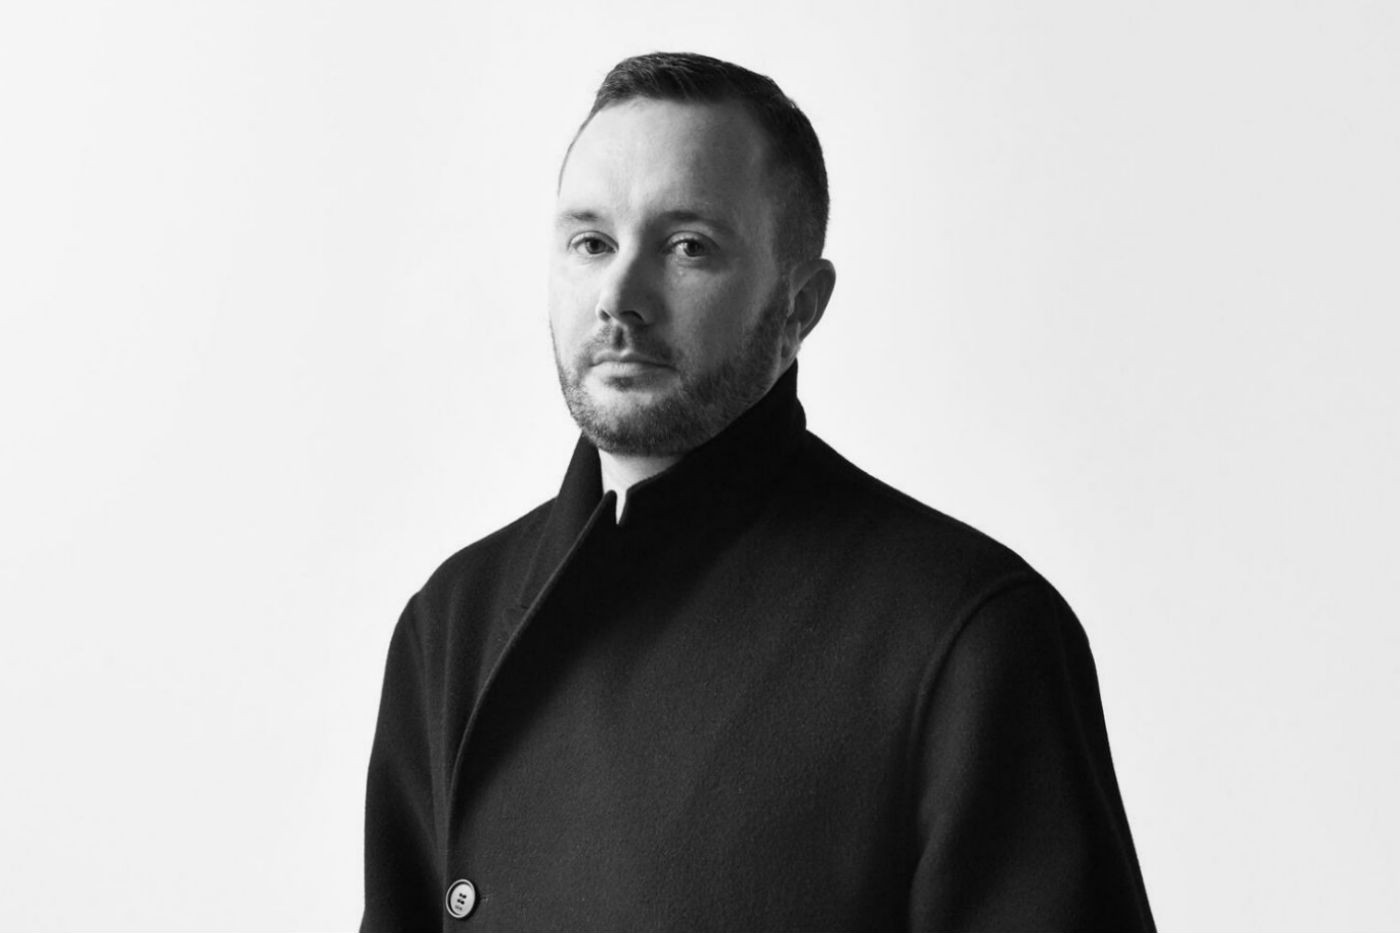 INTERVIEWS, HAJIME SORAYAMA, DIOR, AMBUSH®, YOON, KIM JONES, ALYX, MATTHEW WILLIAMS, PRE-FALL 2019, RAF SIMONS, CALVIN KLEIN, CALVIN KLEIN JEANS, CALVIN KLEIN 205W39NYC, NIKE, VIRGIL ABLOH, OFF-WHITE, THE TEN, WU-TANG CLAN, THE NOTORIOUS B.I.G., BIGGIE SMALLS, WOODY GUTHRIE,